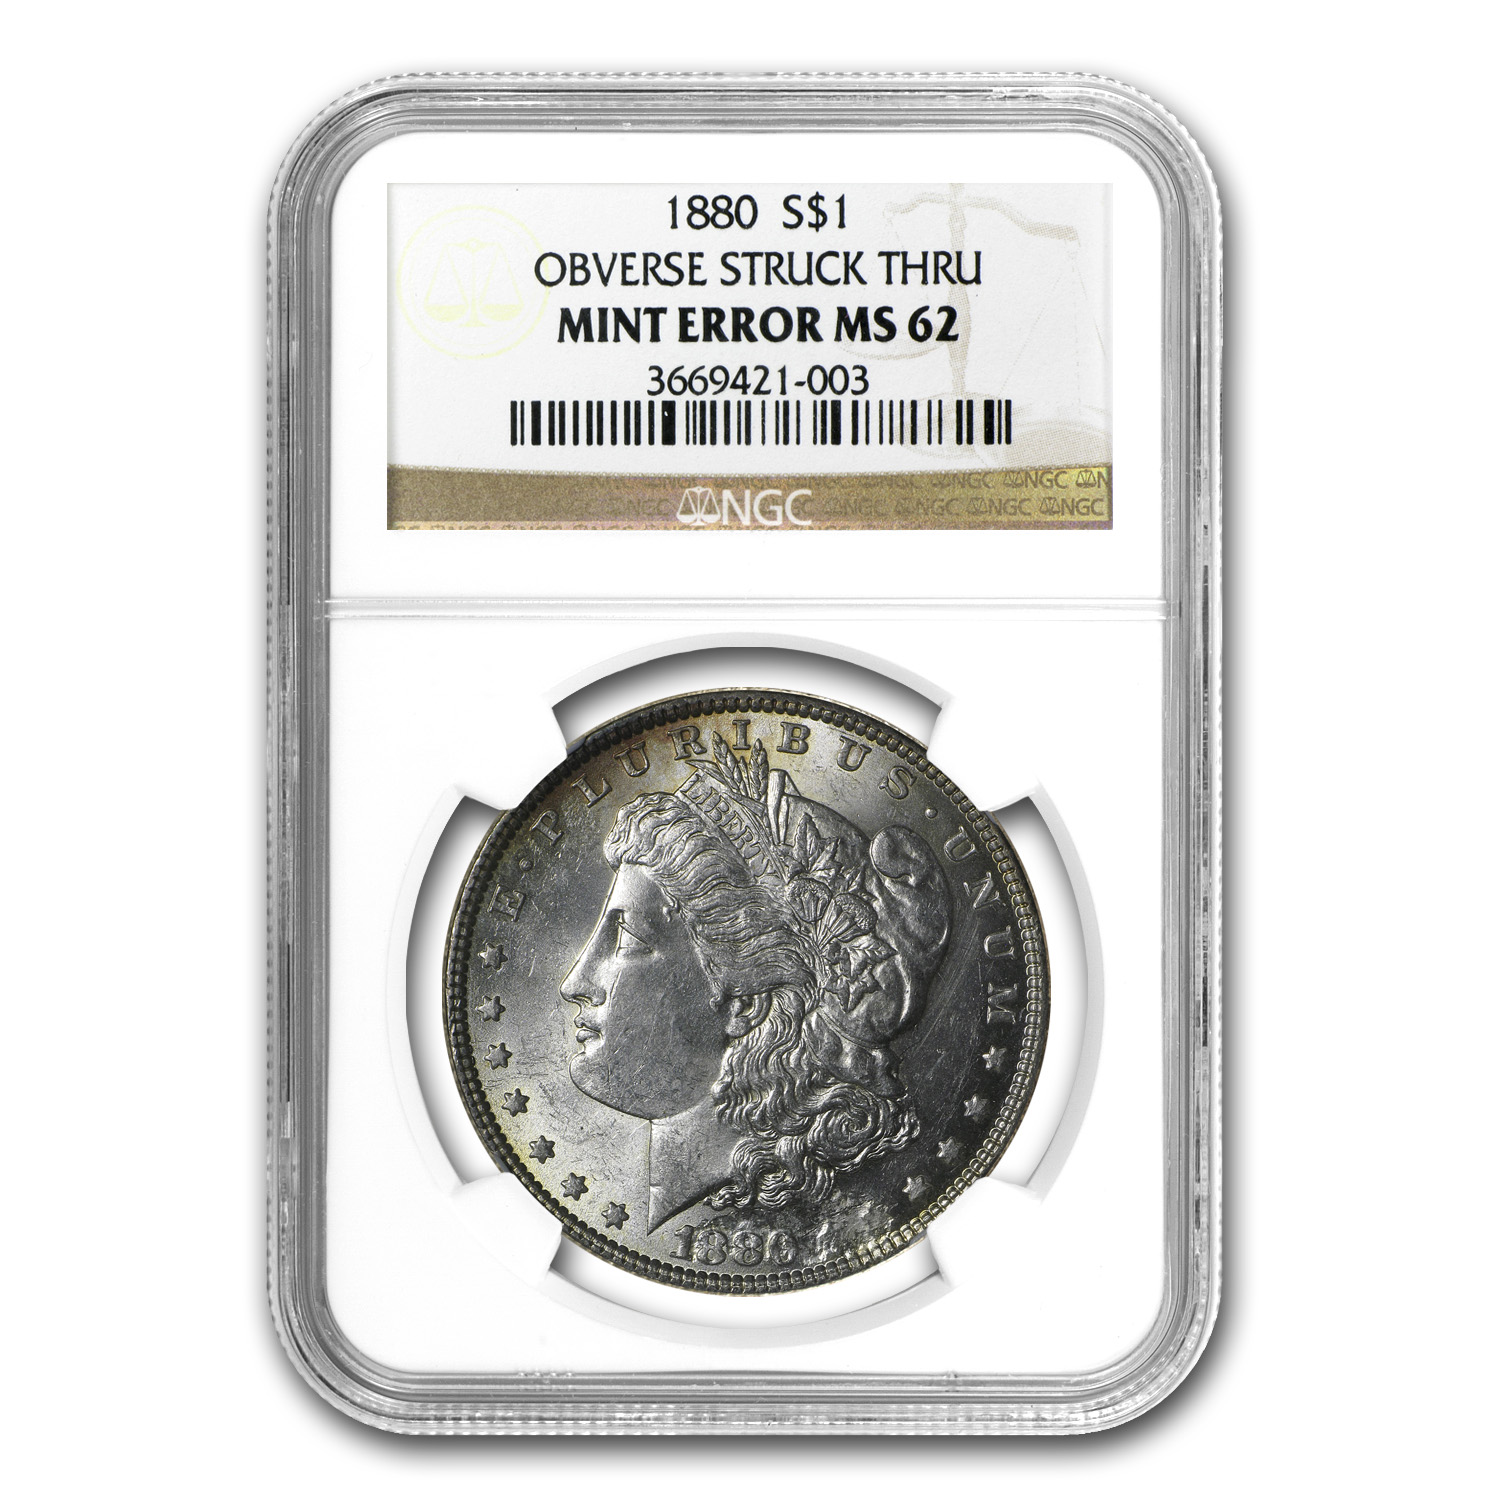 1880 Morgan Dollar MS-62 NGC (Obverse Struck Thru)